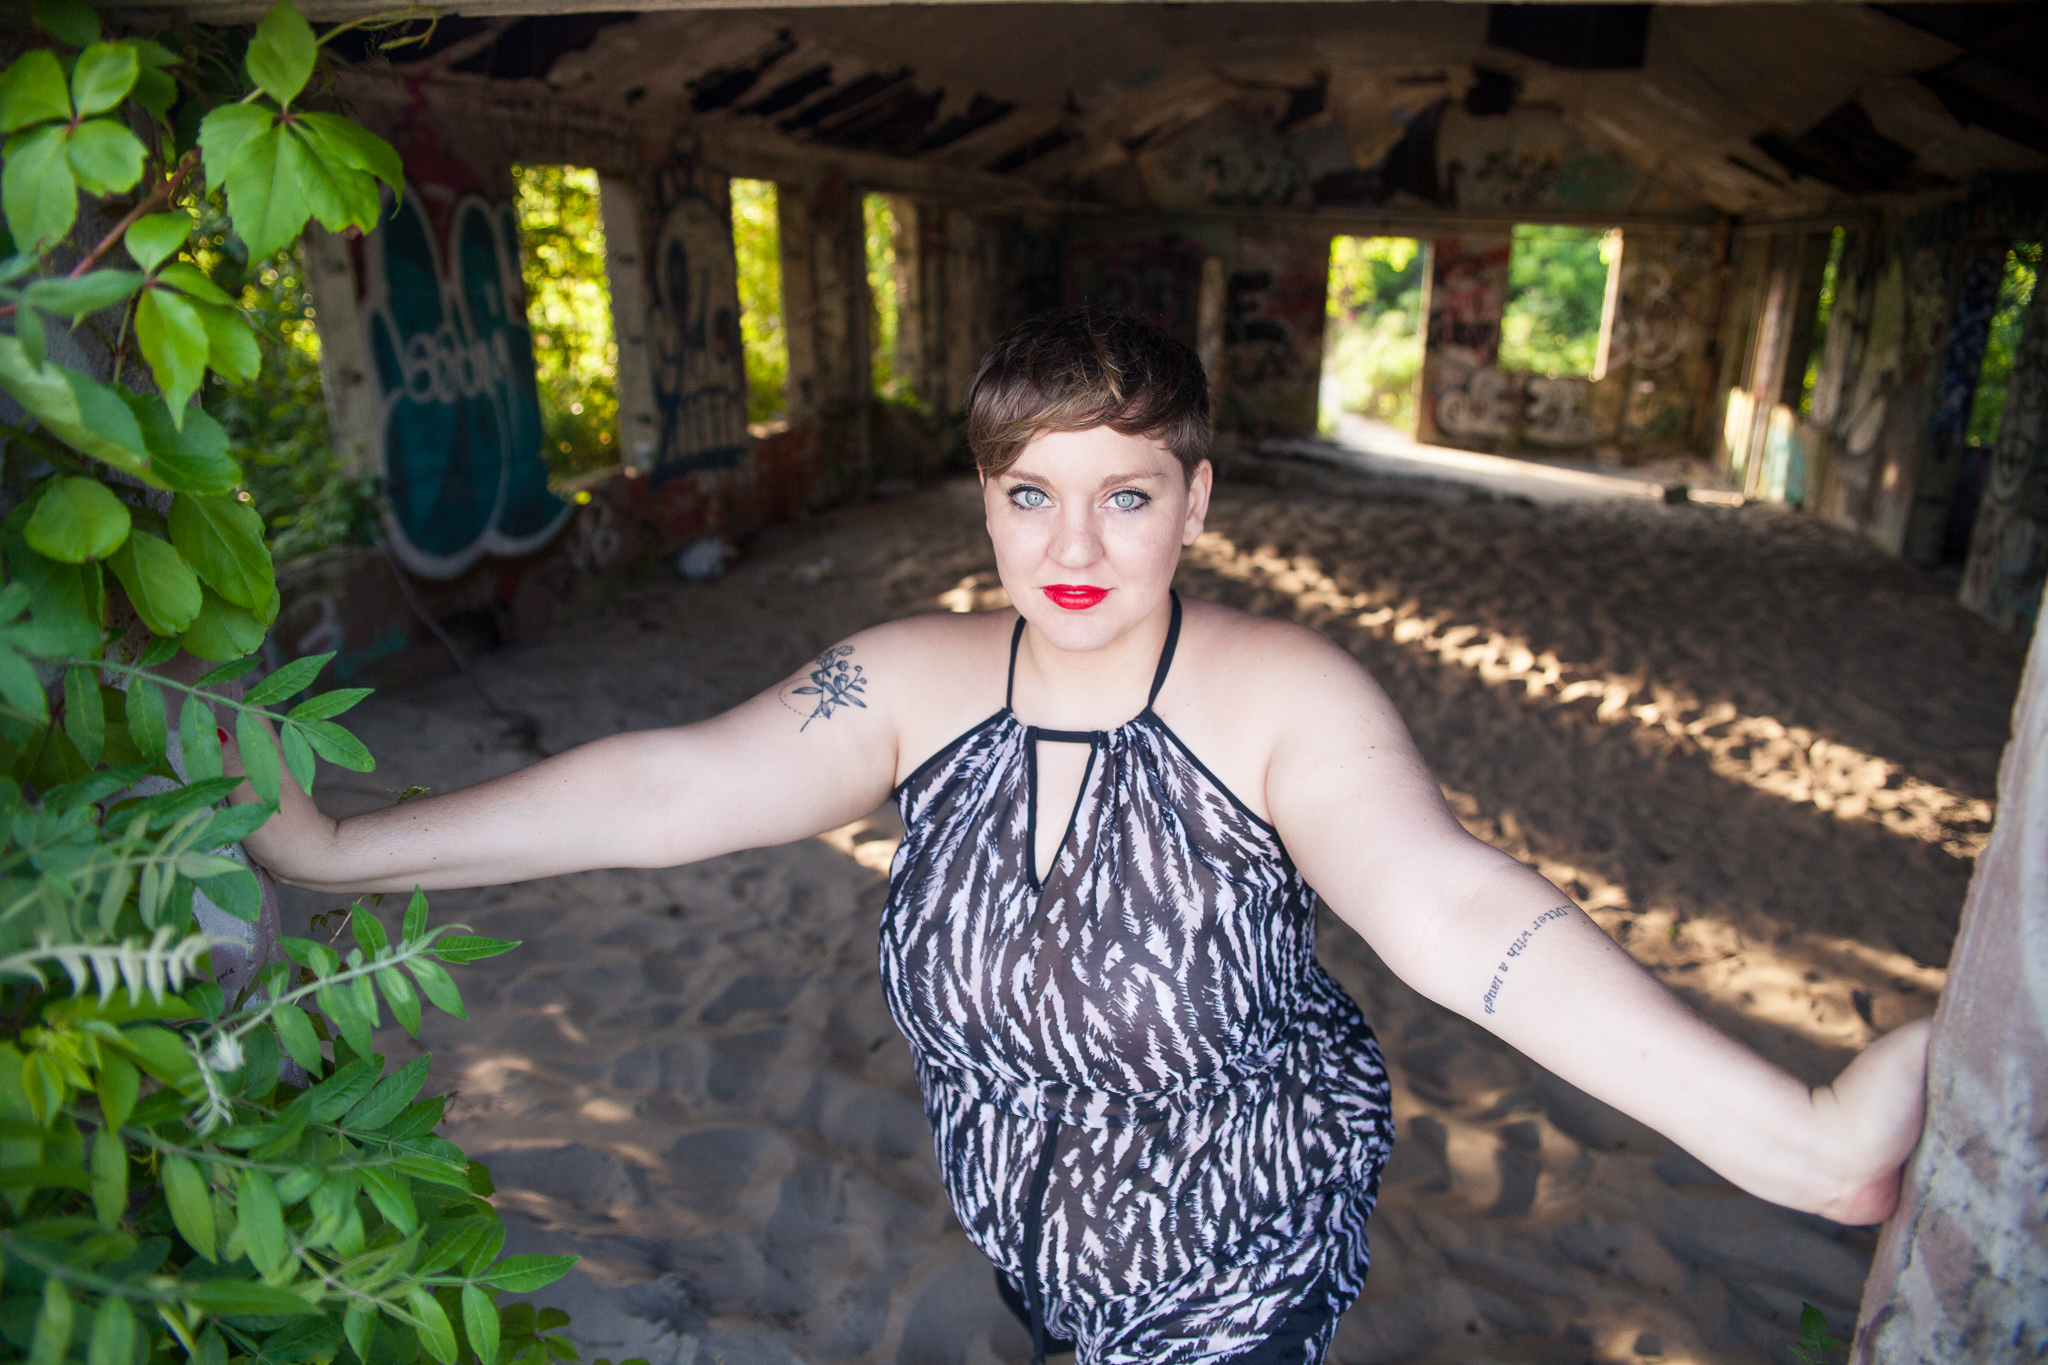 whomstudio_laura-delarato-fort-tilden-beach-nyc_0561-2048.jpg